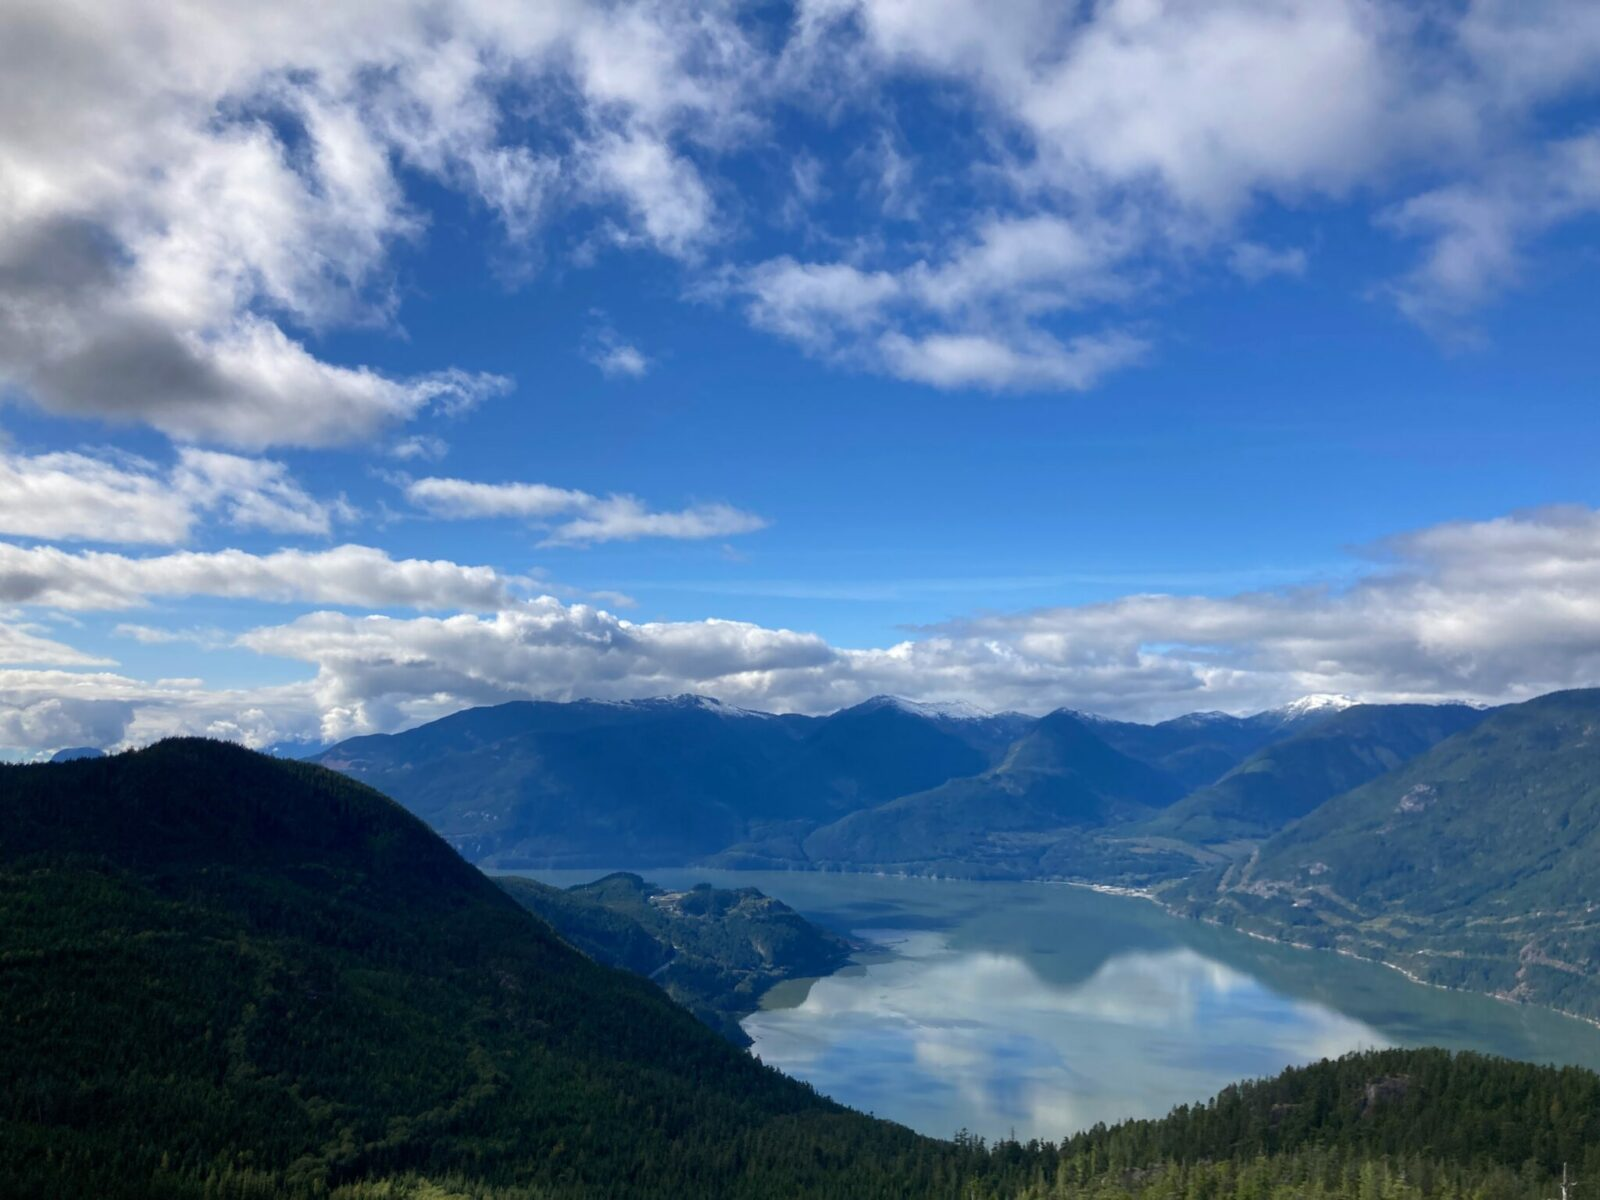 View from the top of the Sea to Sky Gondola on the Vancouver to Whistler drive. It's a partly cloudy day and there are near and distant mountains with a fjord and forests below